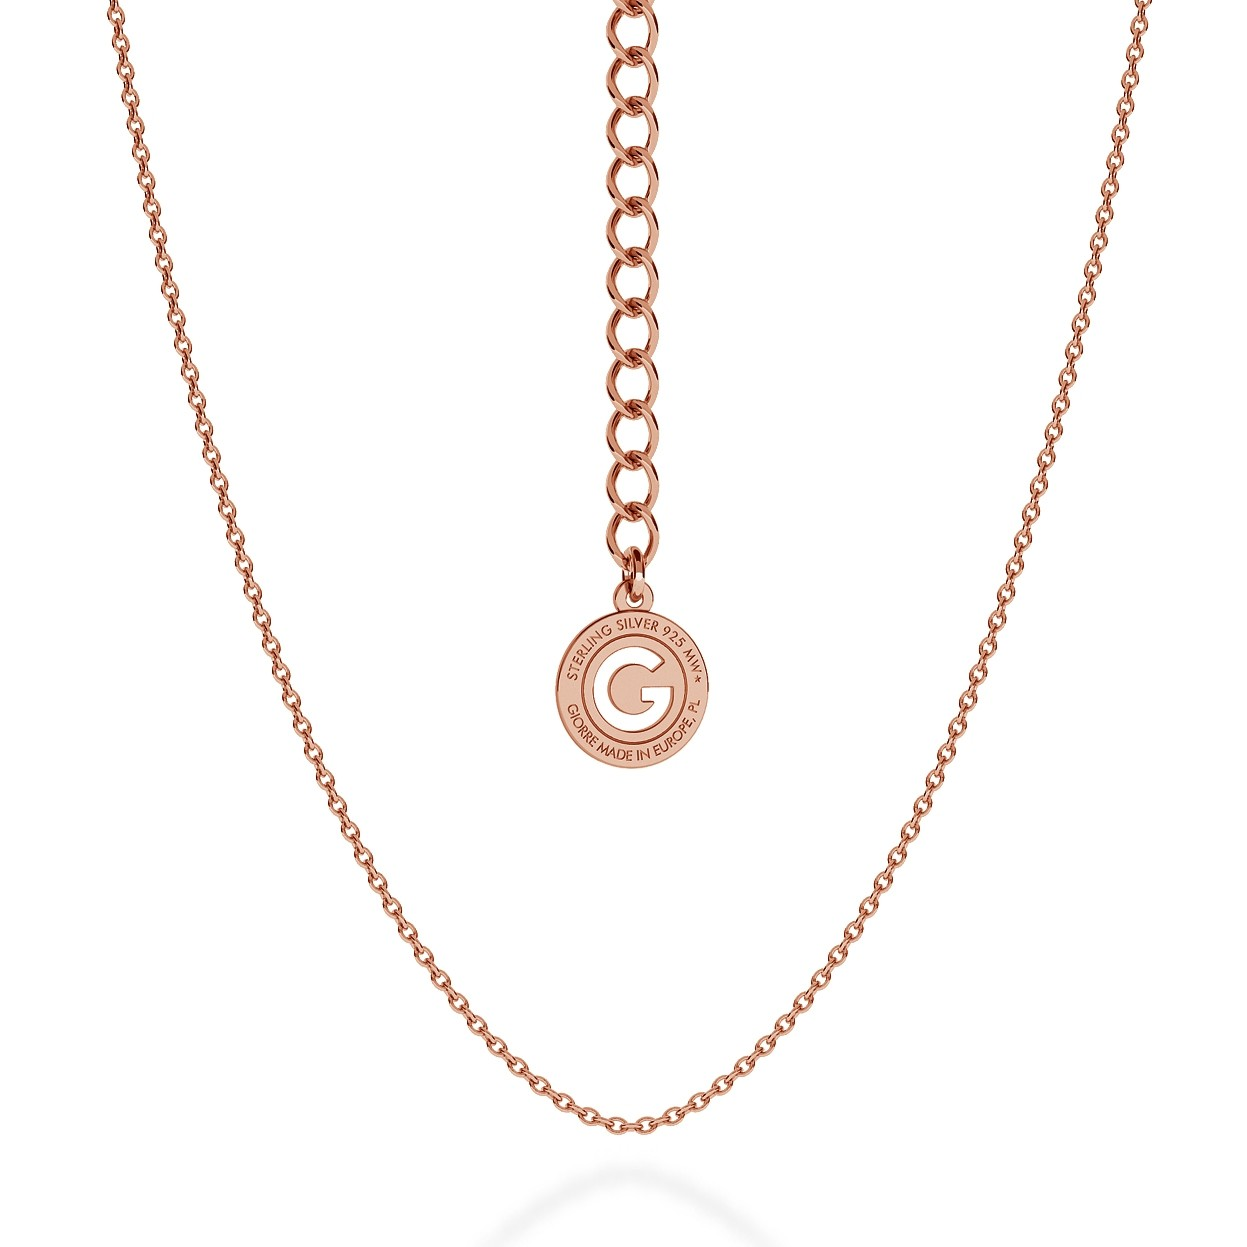 LIGHT SILVER NECKLACE 55 CM, GOLD PLATED (PINK GOLD)